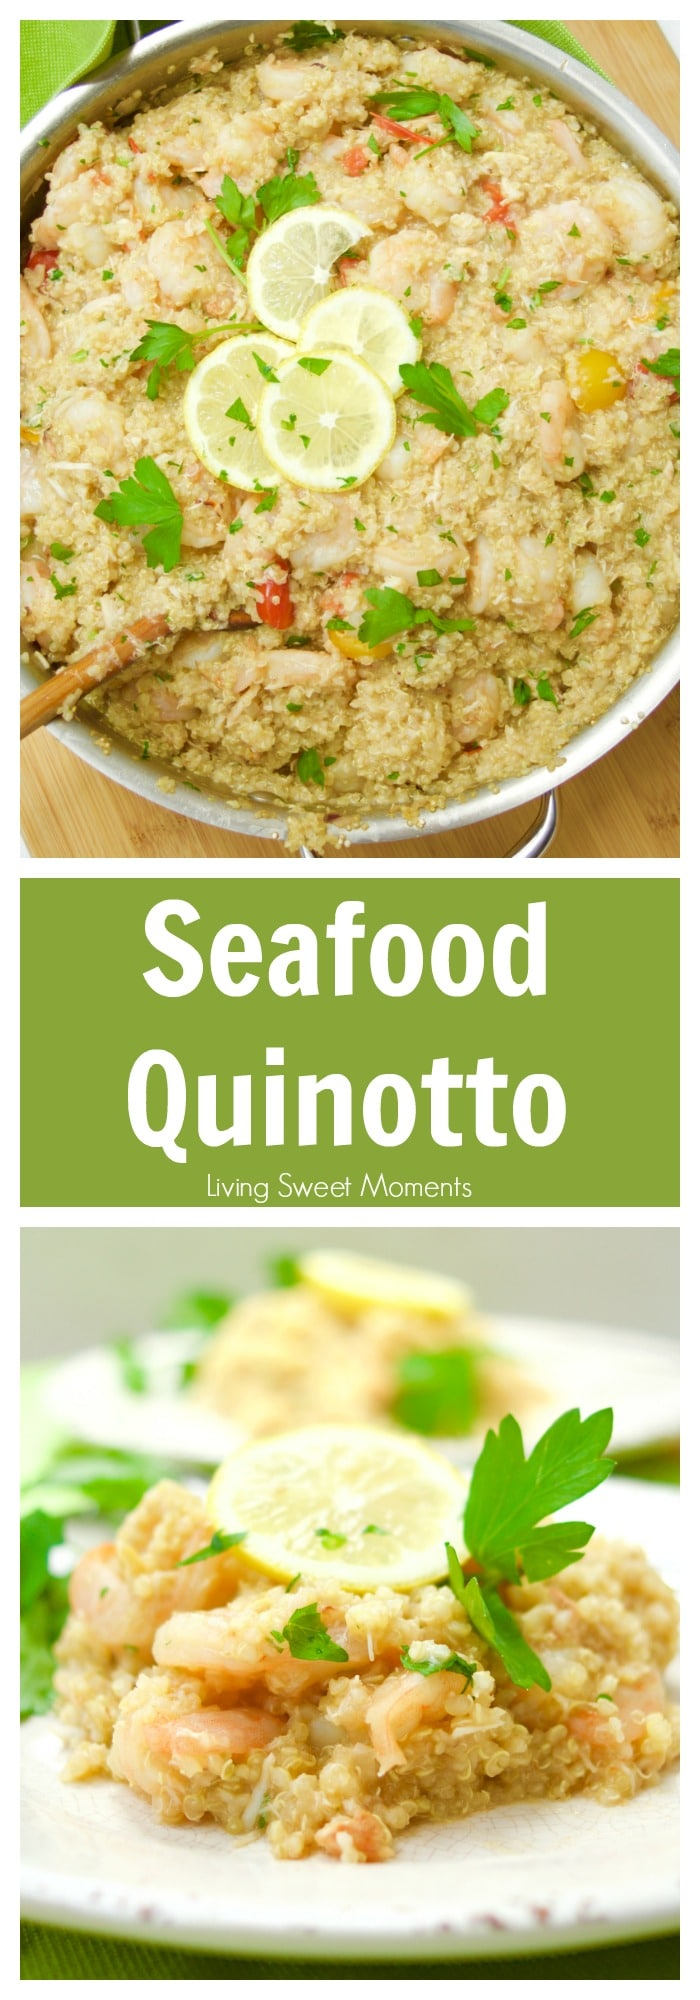 This delicious Peruvian Quinotto recipe is made with seafood, wine, and tomato. Perfect for summer entertaining and can be made in 30 minutes or less. Yum!